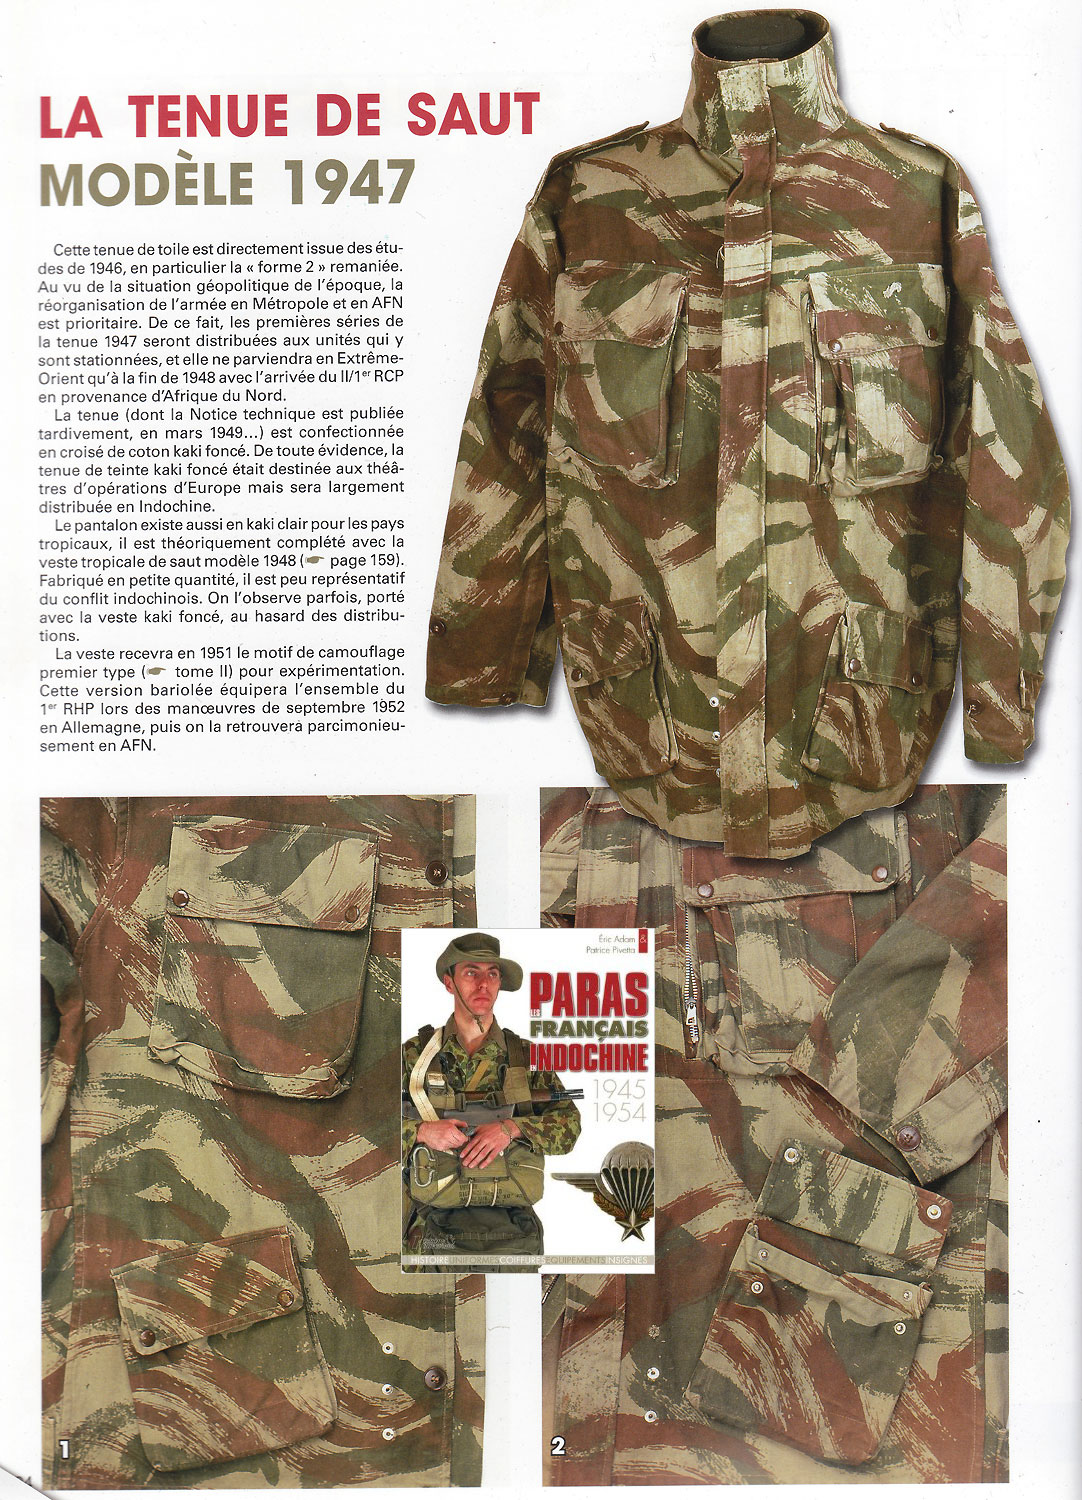 4acbf2ffccee2 ... how the detailing on the black can be mistaken for lizard tails?). The  Republic of Vietnam Marine Corps made a small update to the print as a  response ...